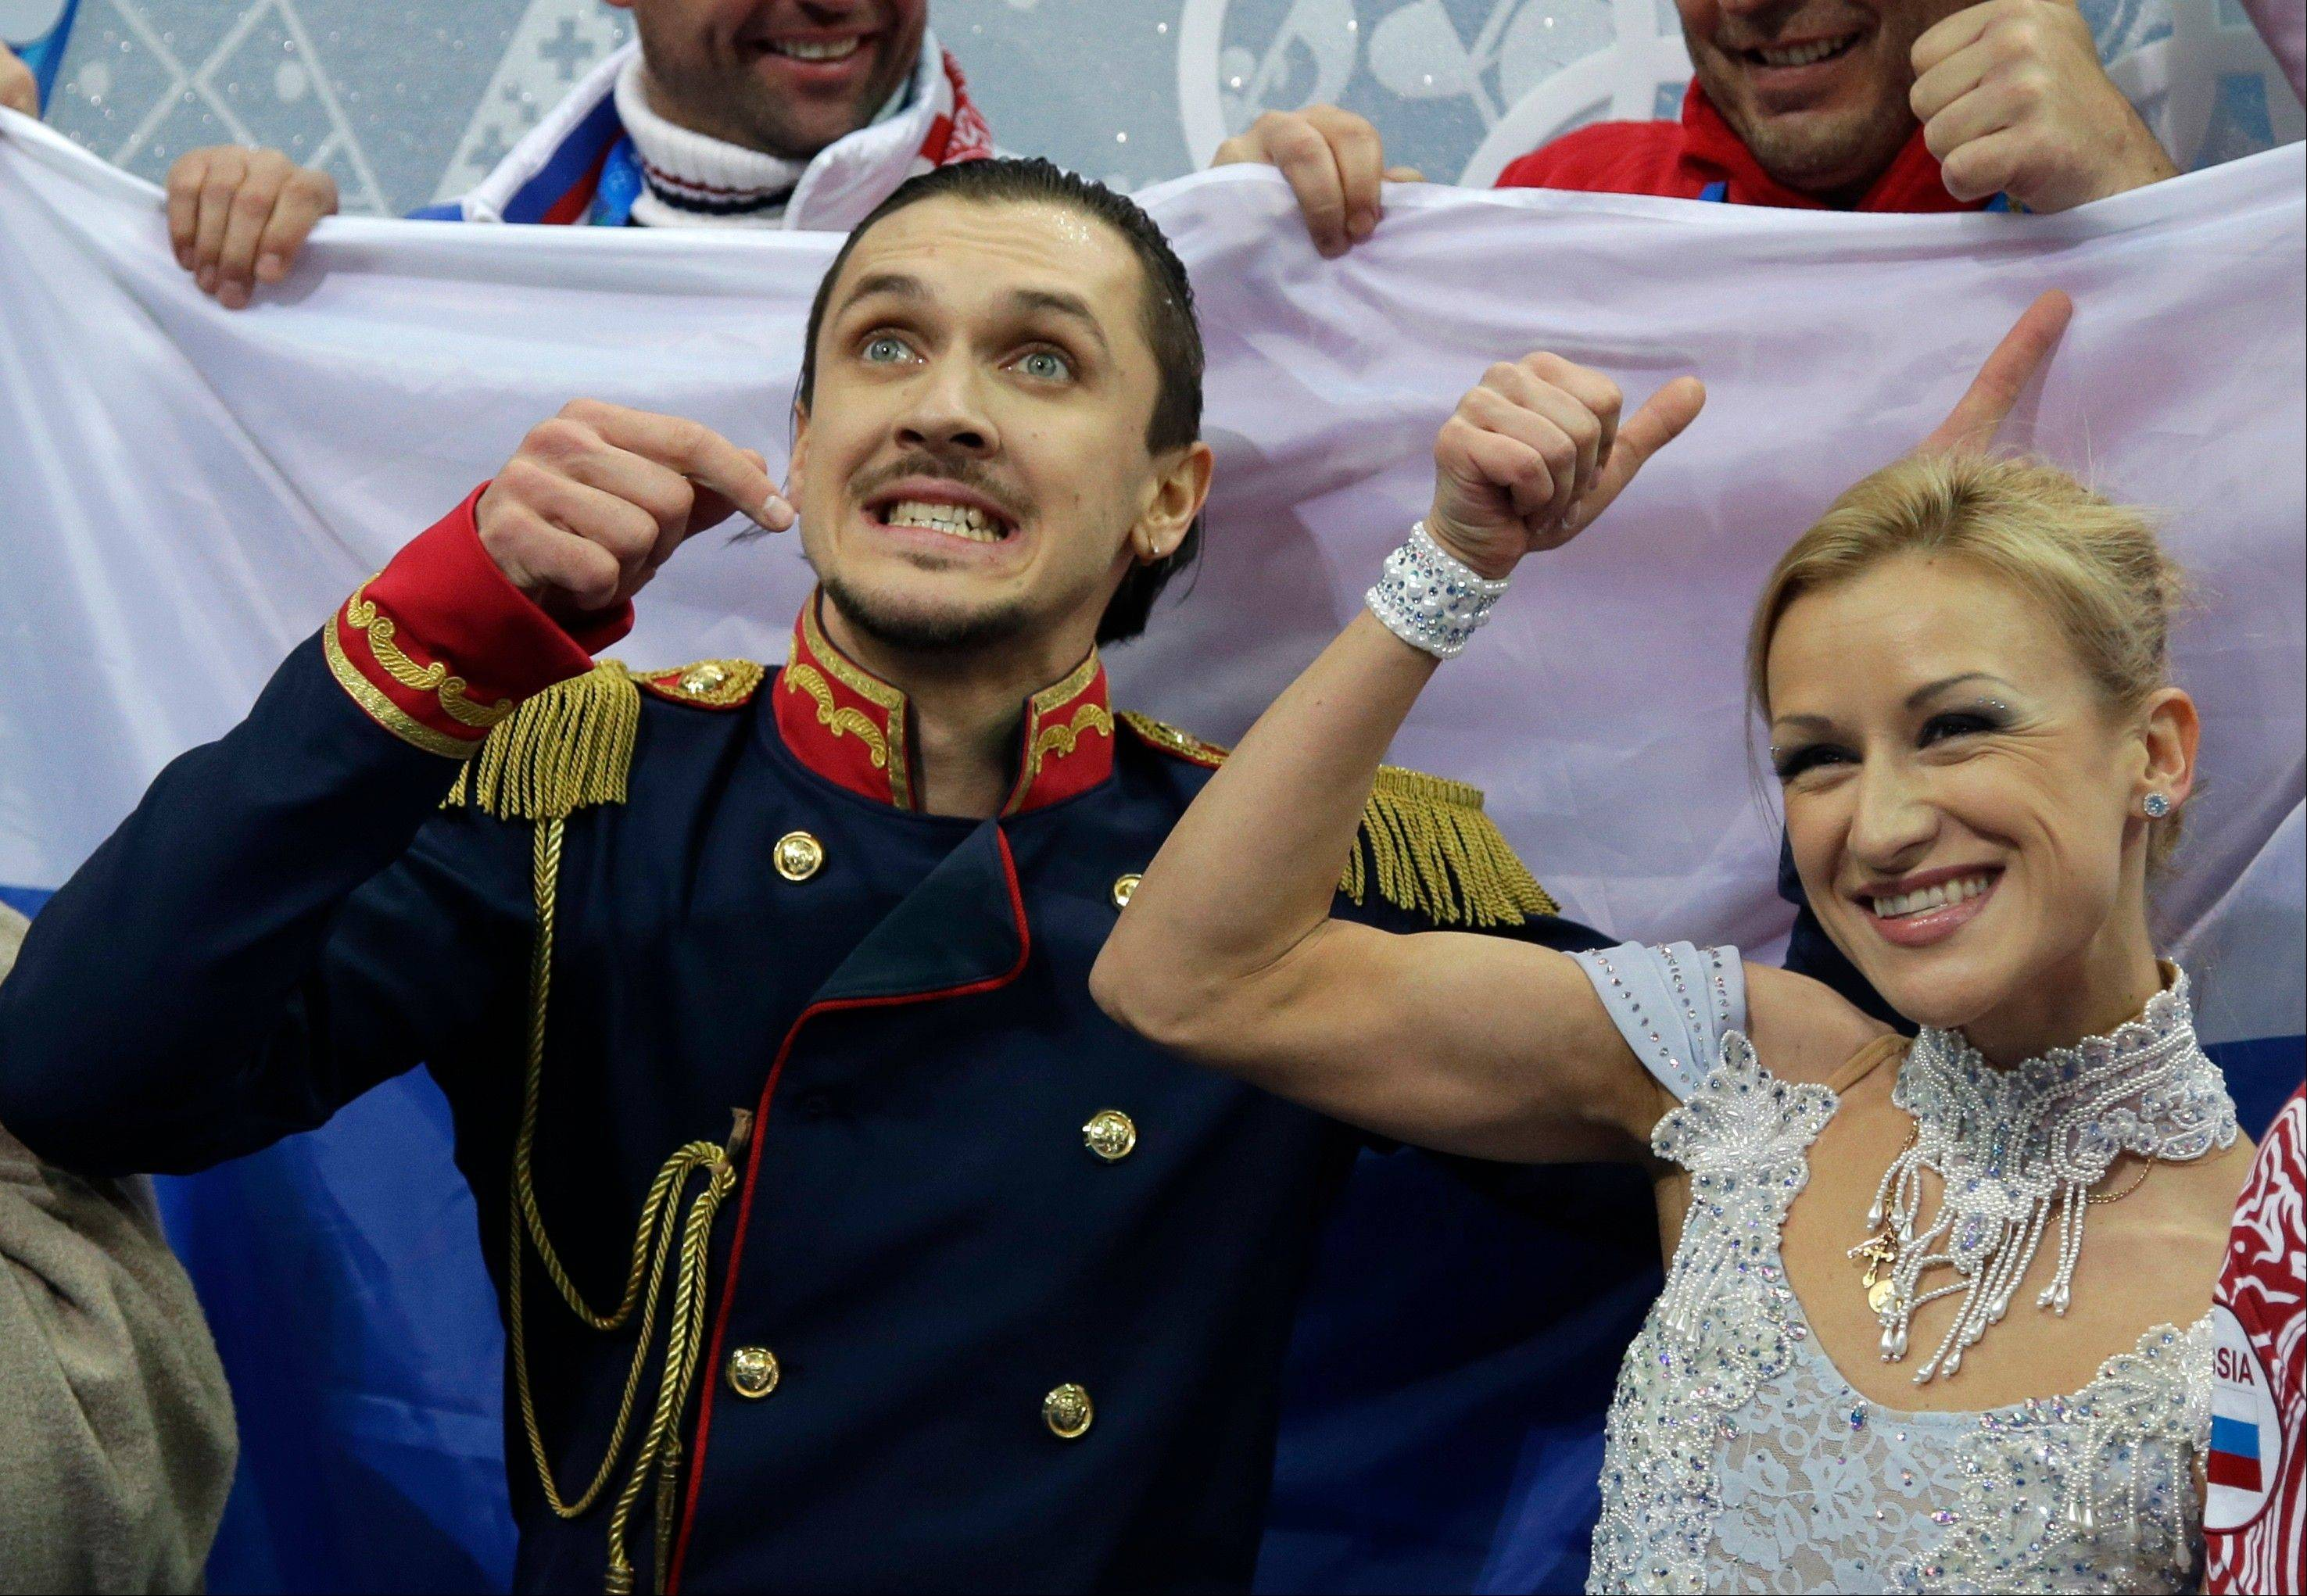 Tatiana Volosozhar and Maxim Trankov of Russia gesture to spectators as they wait for their results in the team pairs short program figure skating competition at the Iceberg Skating Palace.